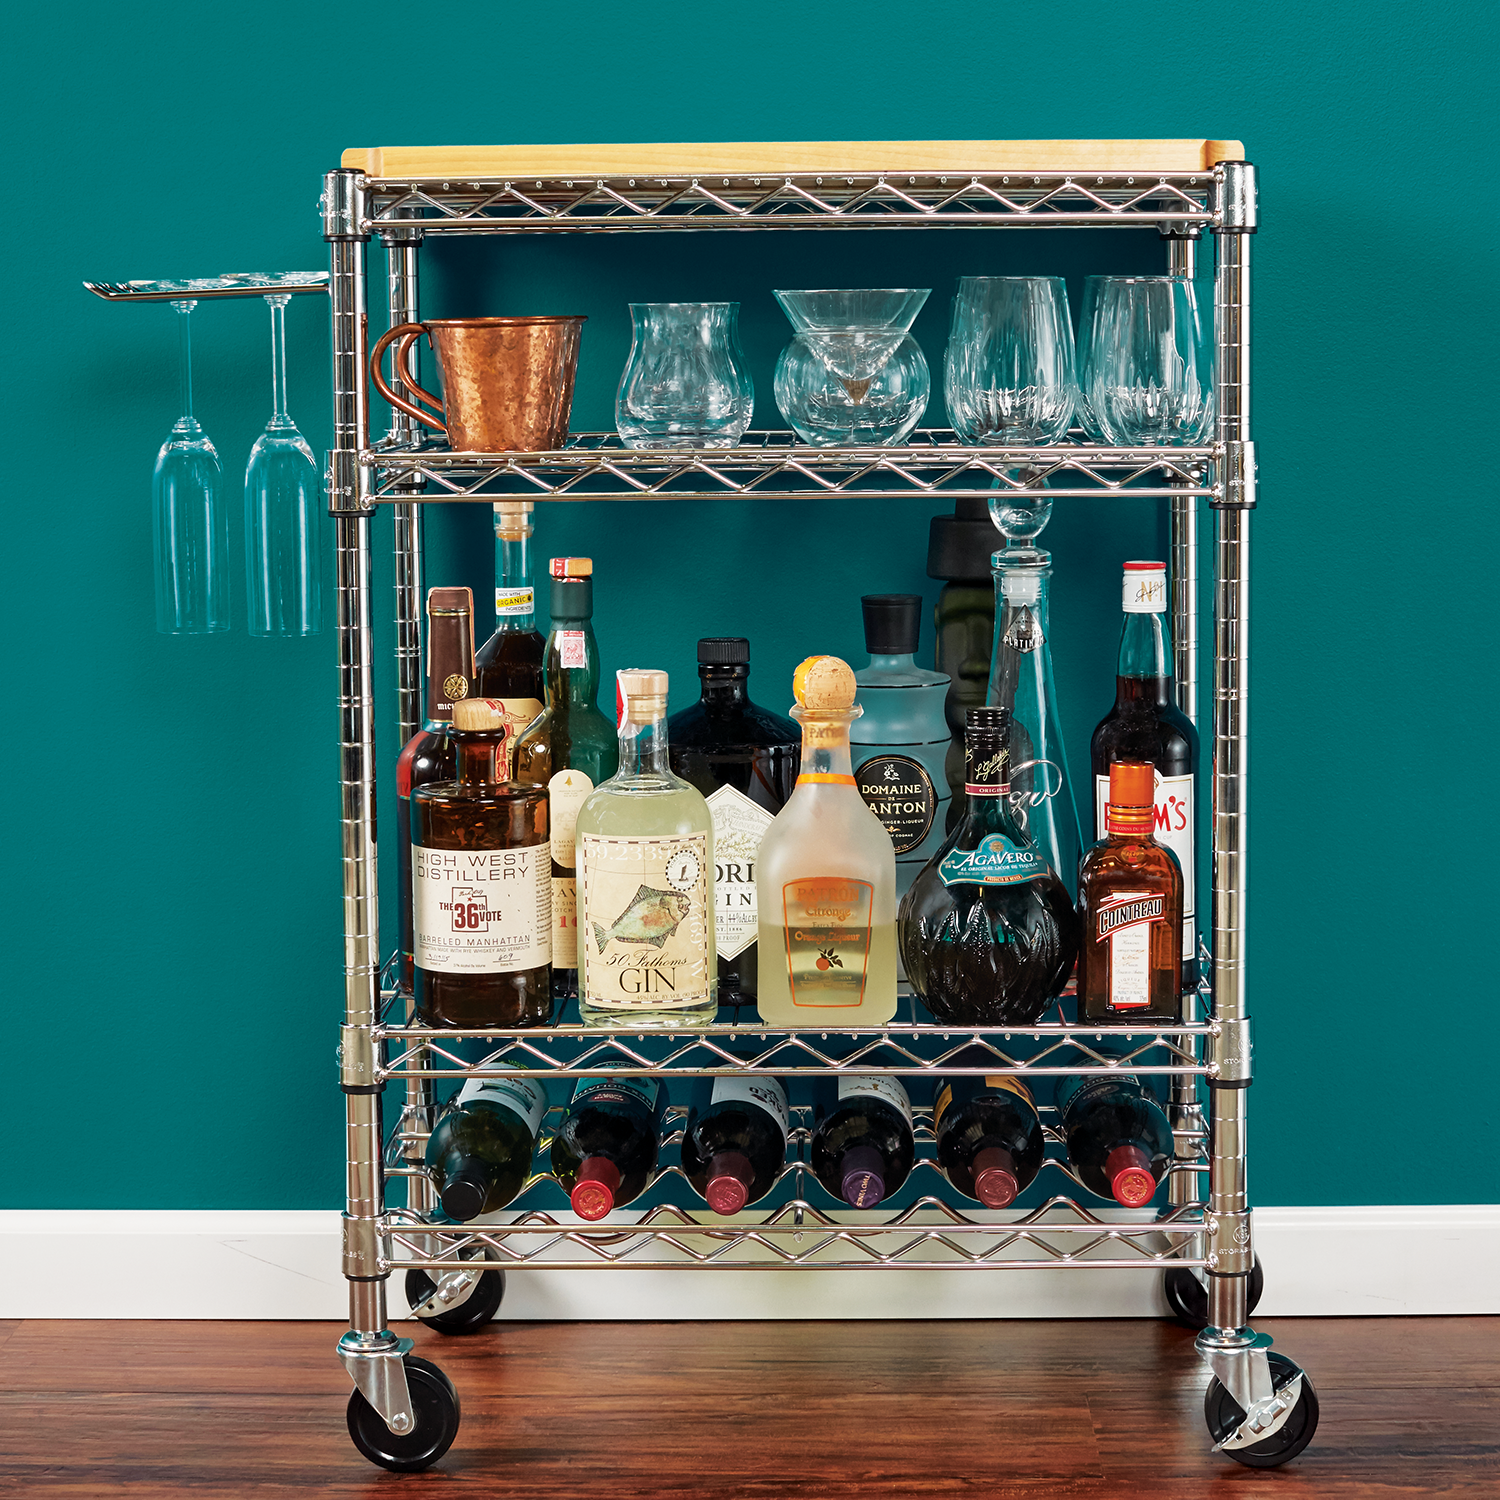 Bottoms up! Our Chrome IP Shelving beautifully constructed into a ...